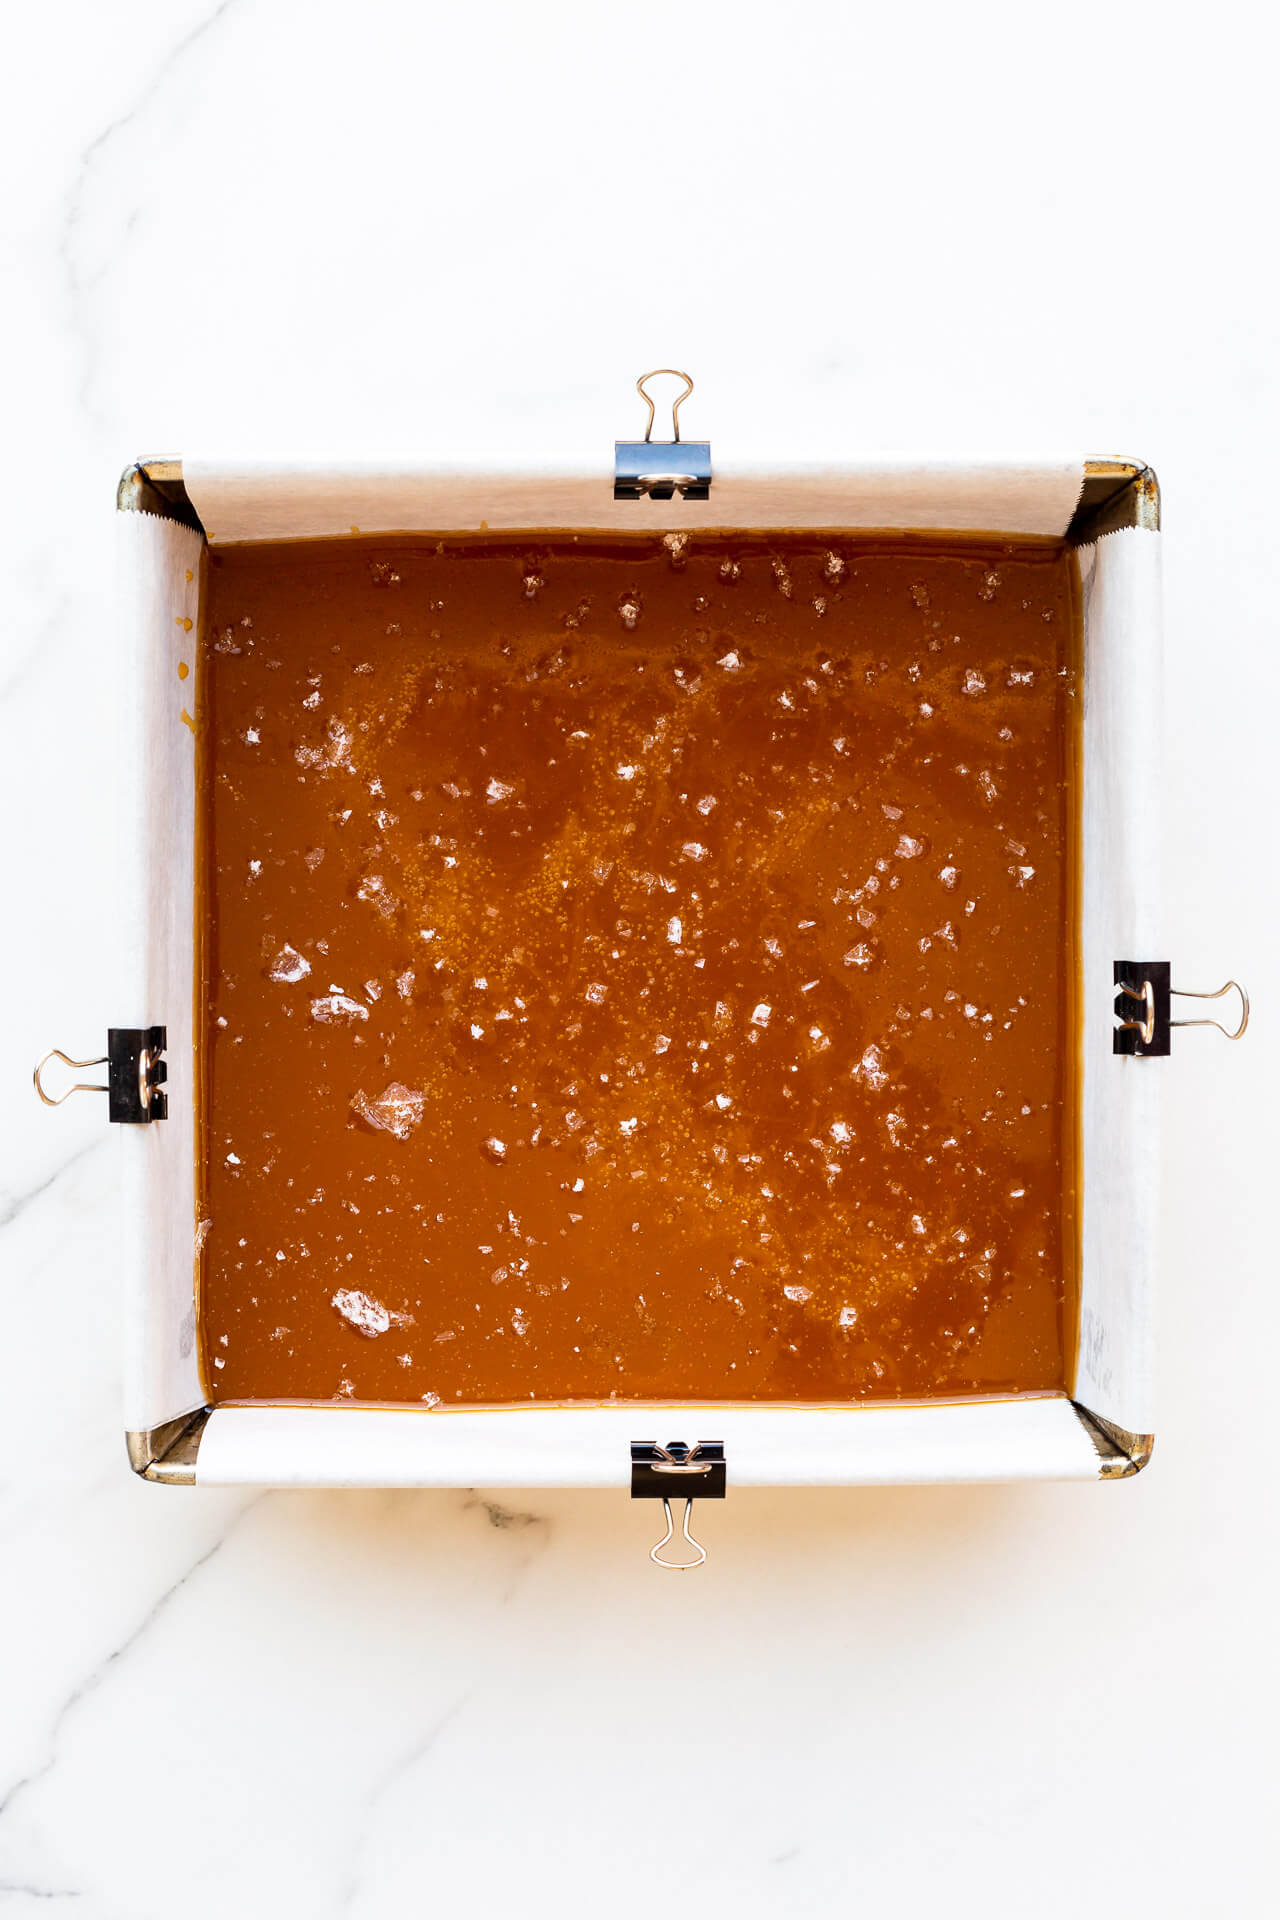 Caramels setting in an 8x8 pan lined with parchment paper clipped to sides of pan to hold it in place